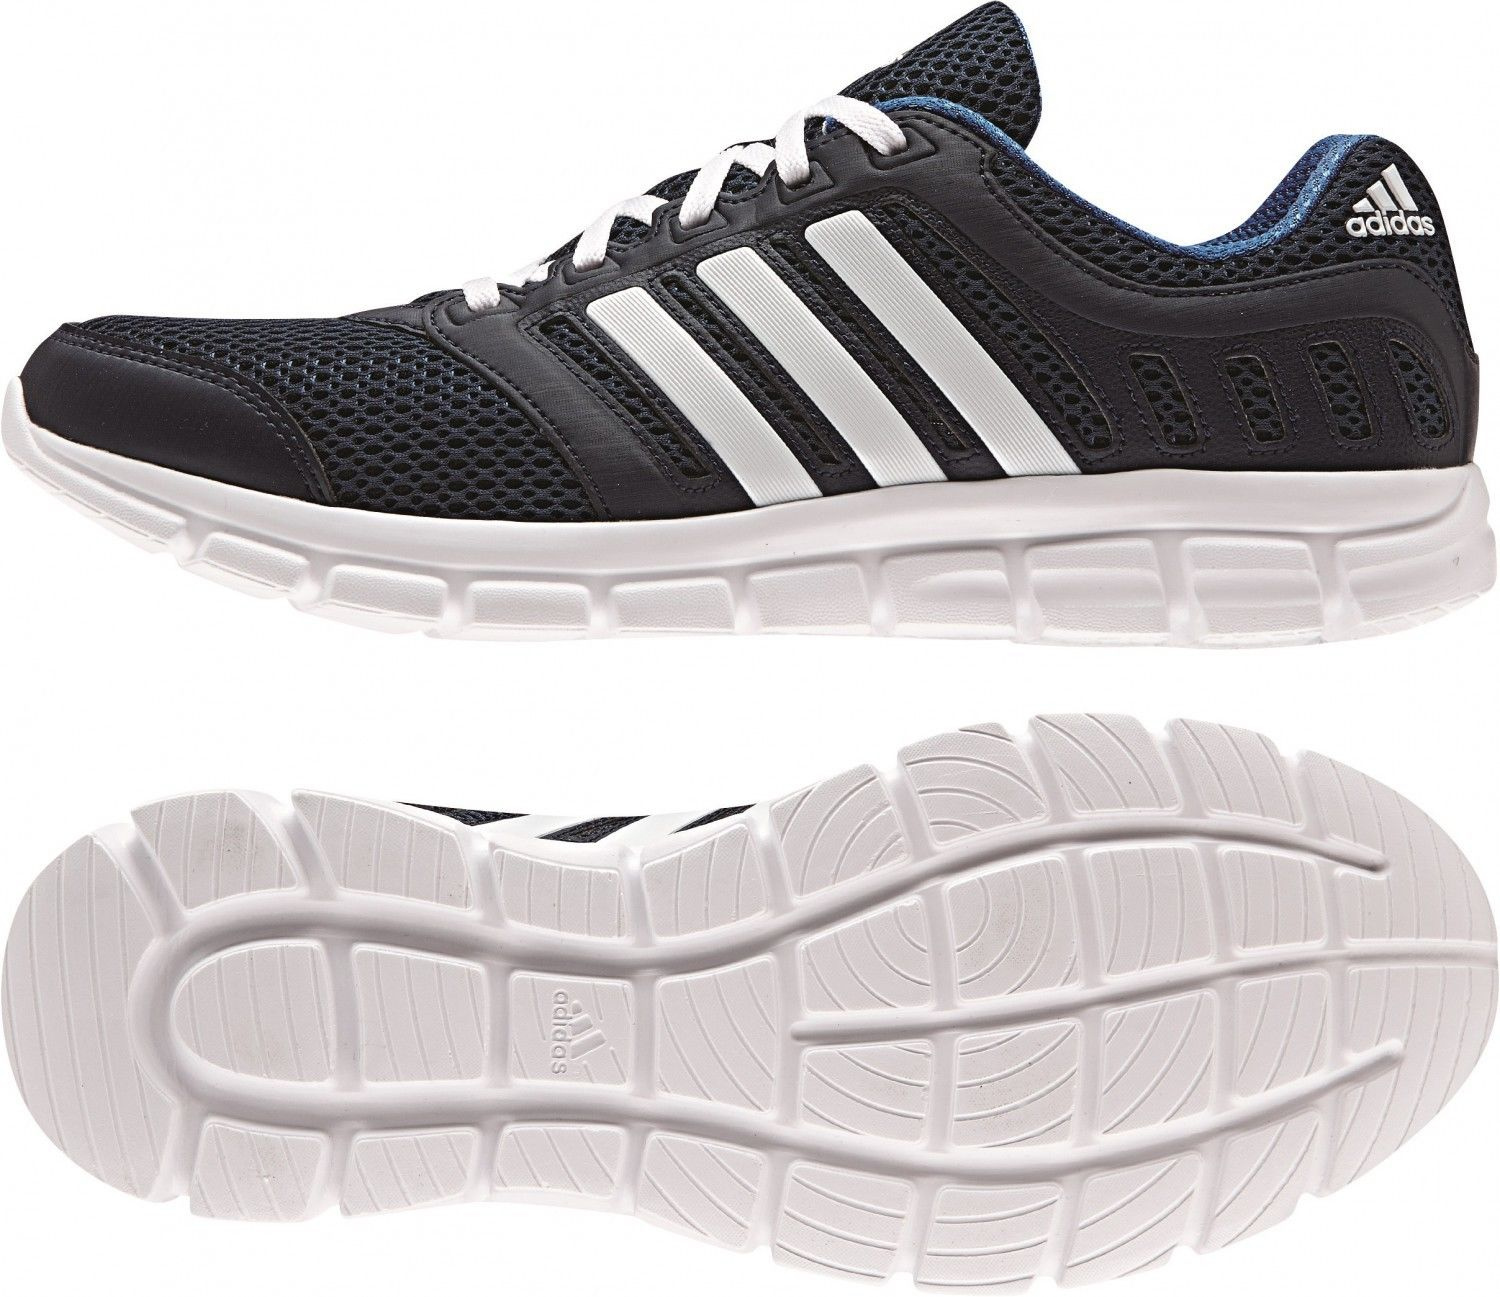 Adidas Breeze 101 2 Athletic Running Men's Shoes (Multiple Colors)